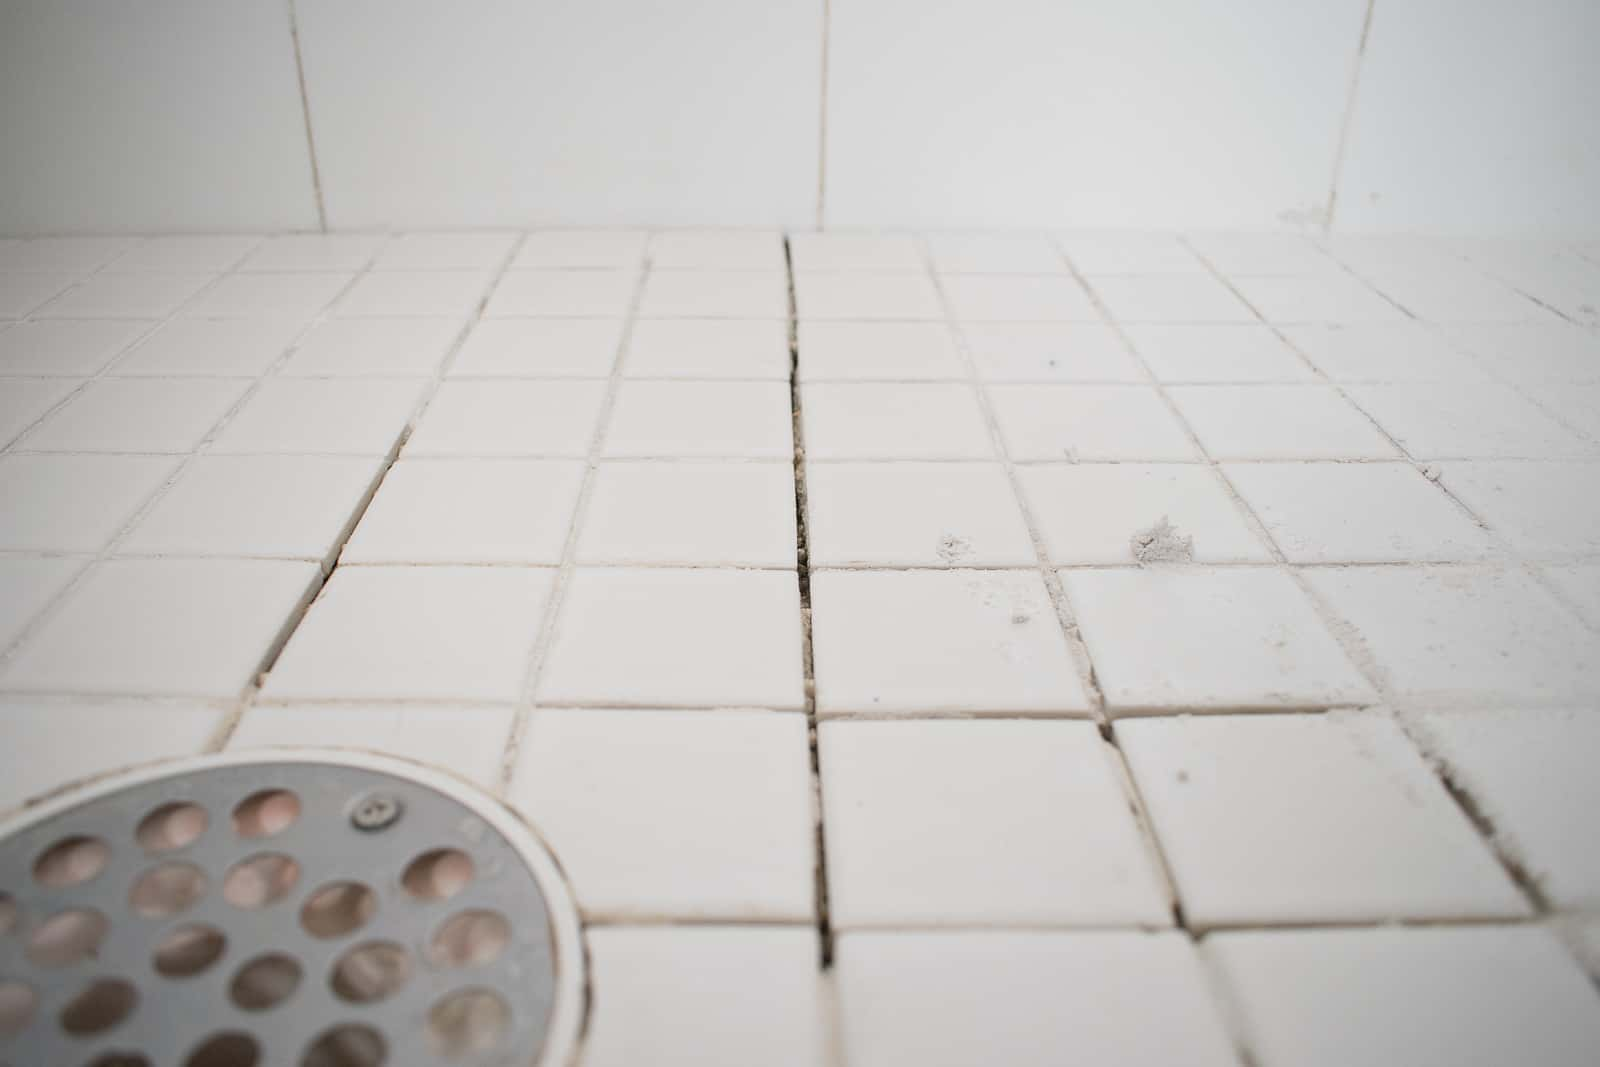 missing grout in the shower